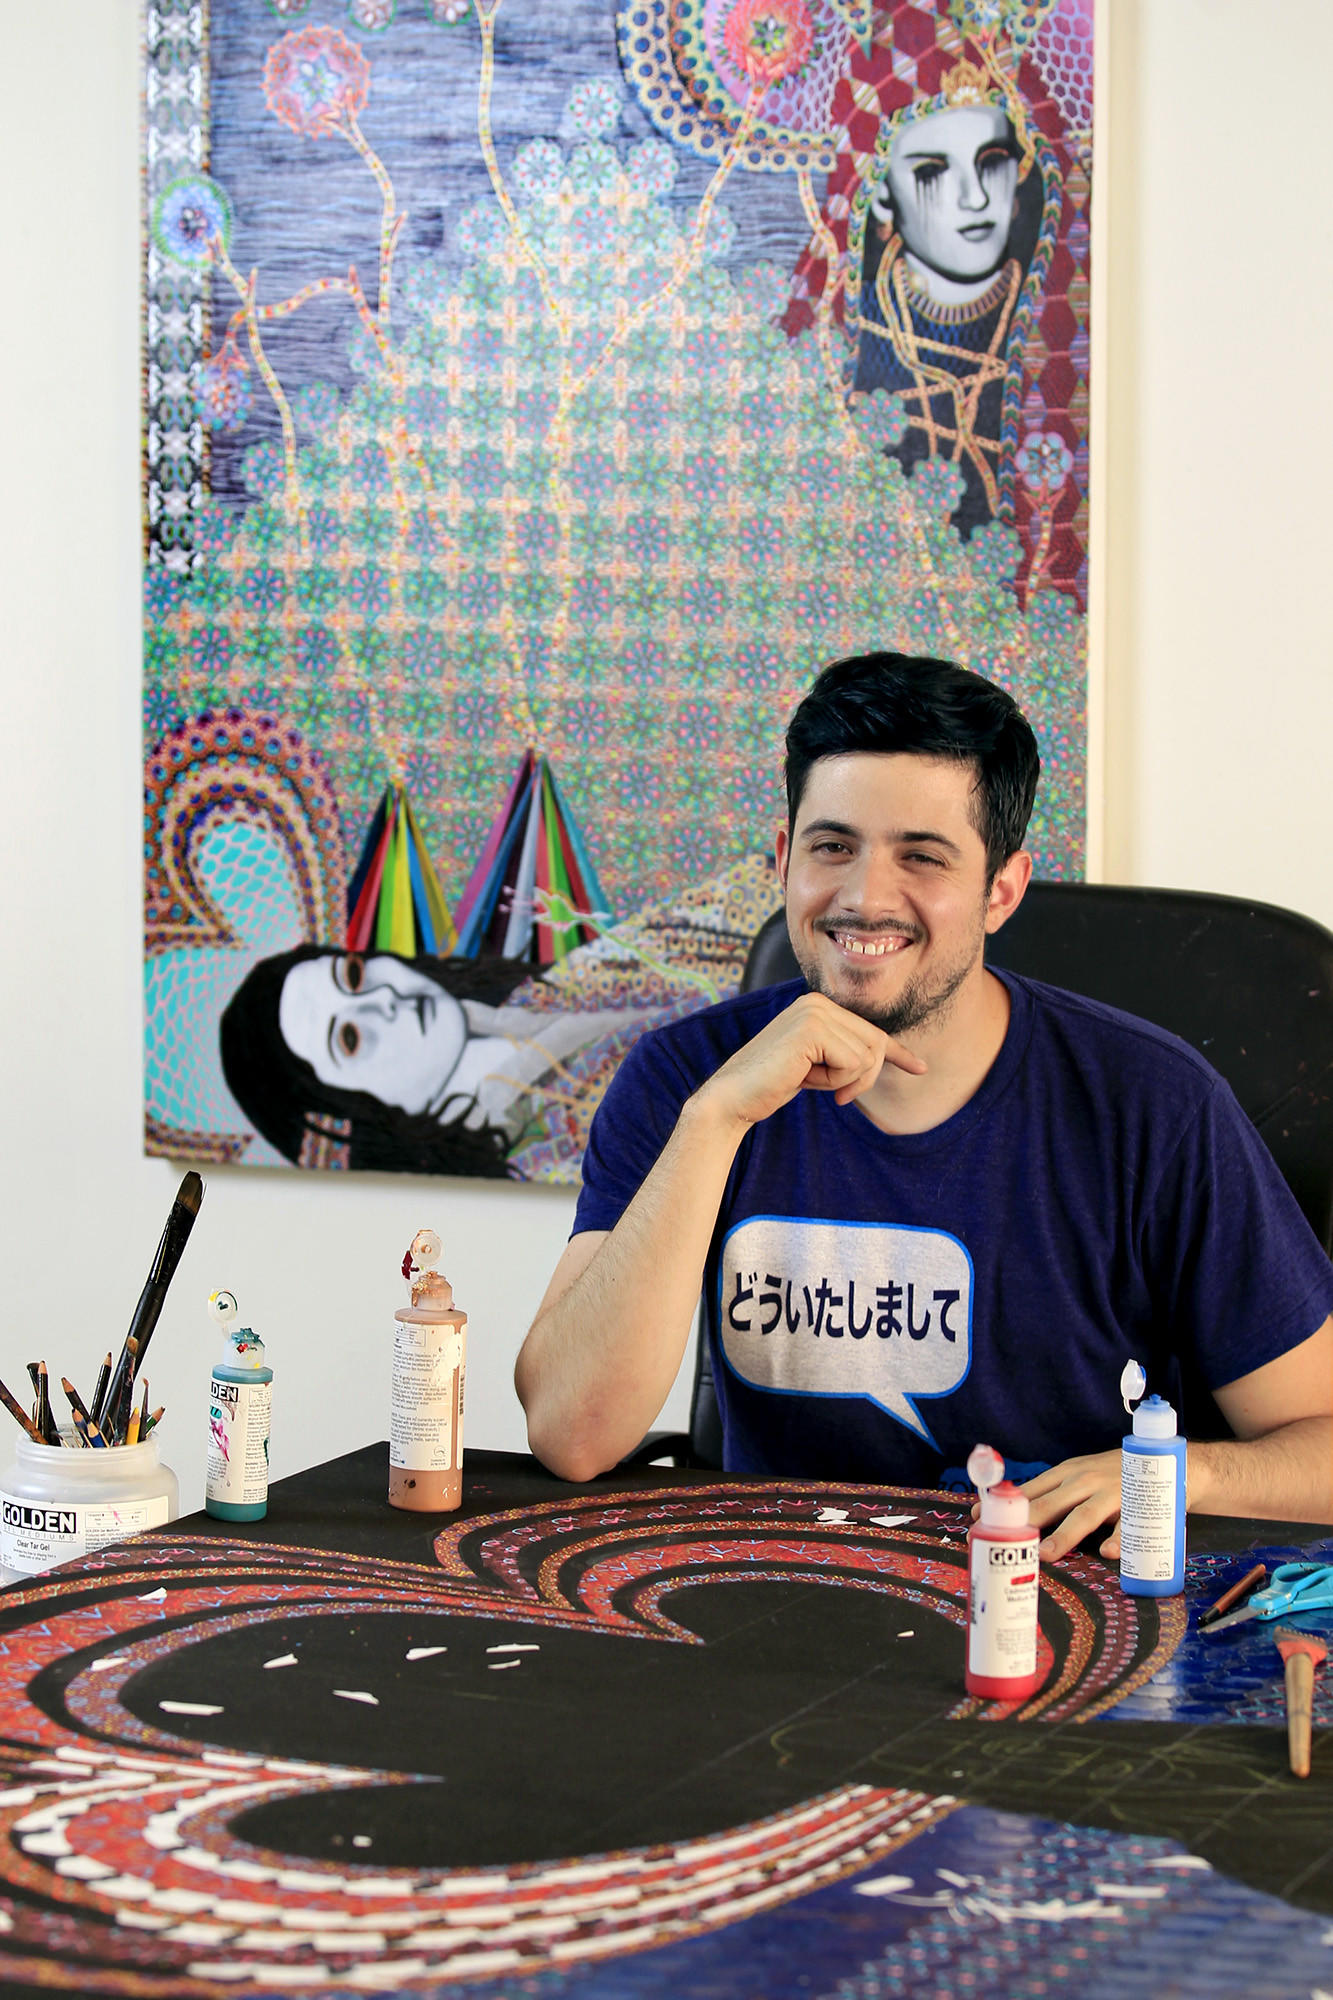 Artist Asad Faulwell, 31, poses for a photo at his home studio in Newport Beach. The Orange County Museum of Art will host Art Auction 2014, with more than 60 museum-quality works of art that will be auctioned off on March 14. Proceeds benefit the museum's exhibition and education programs.